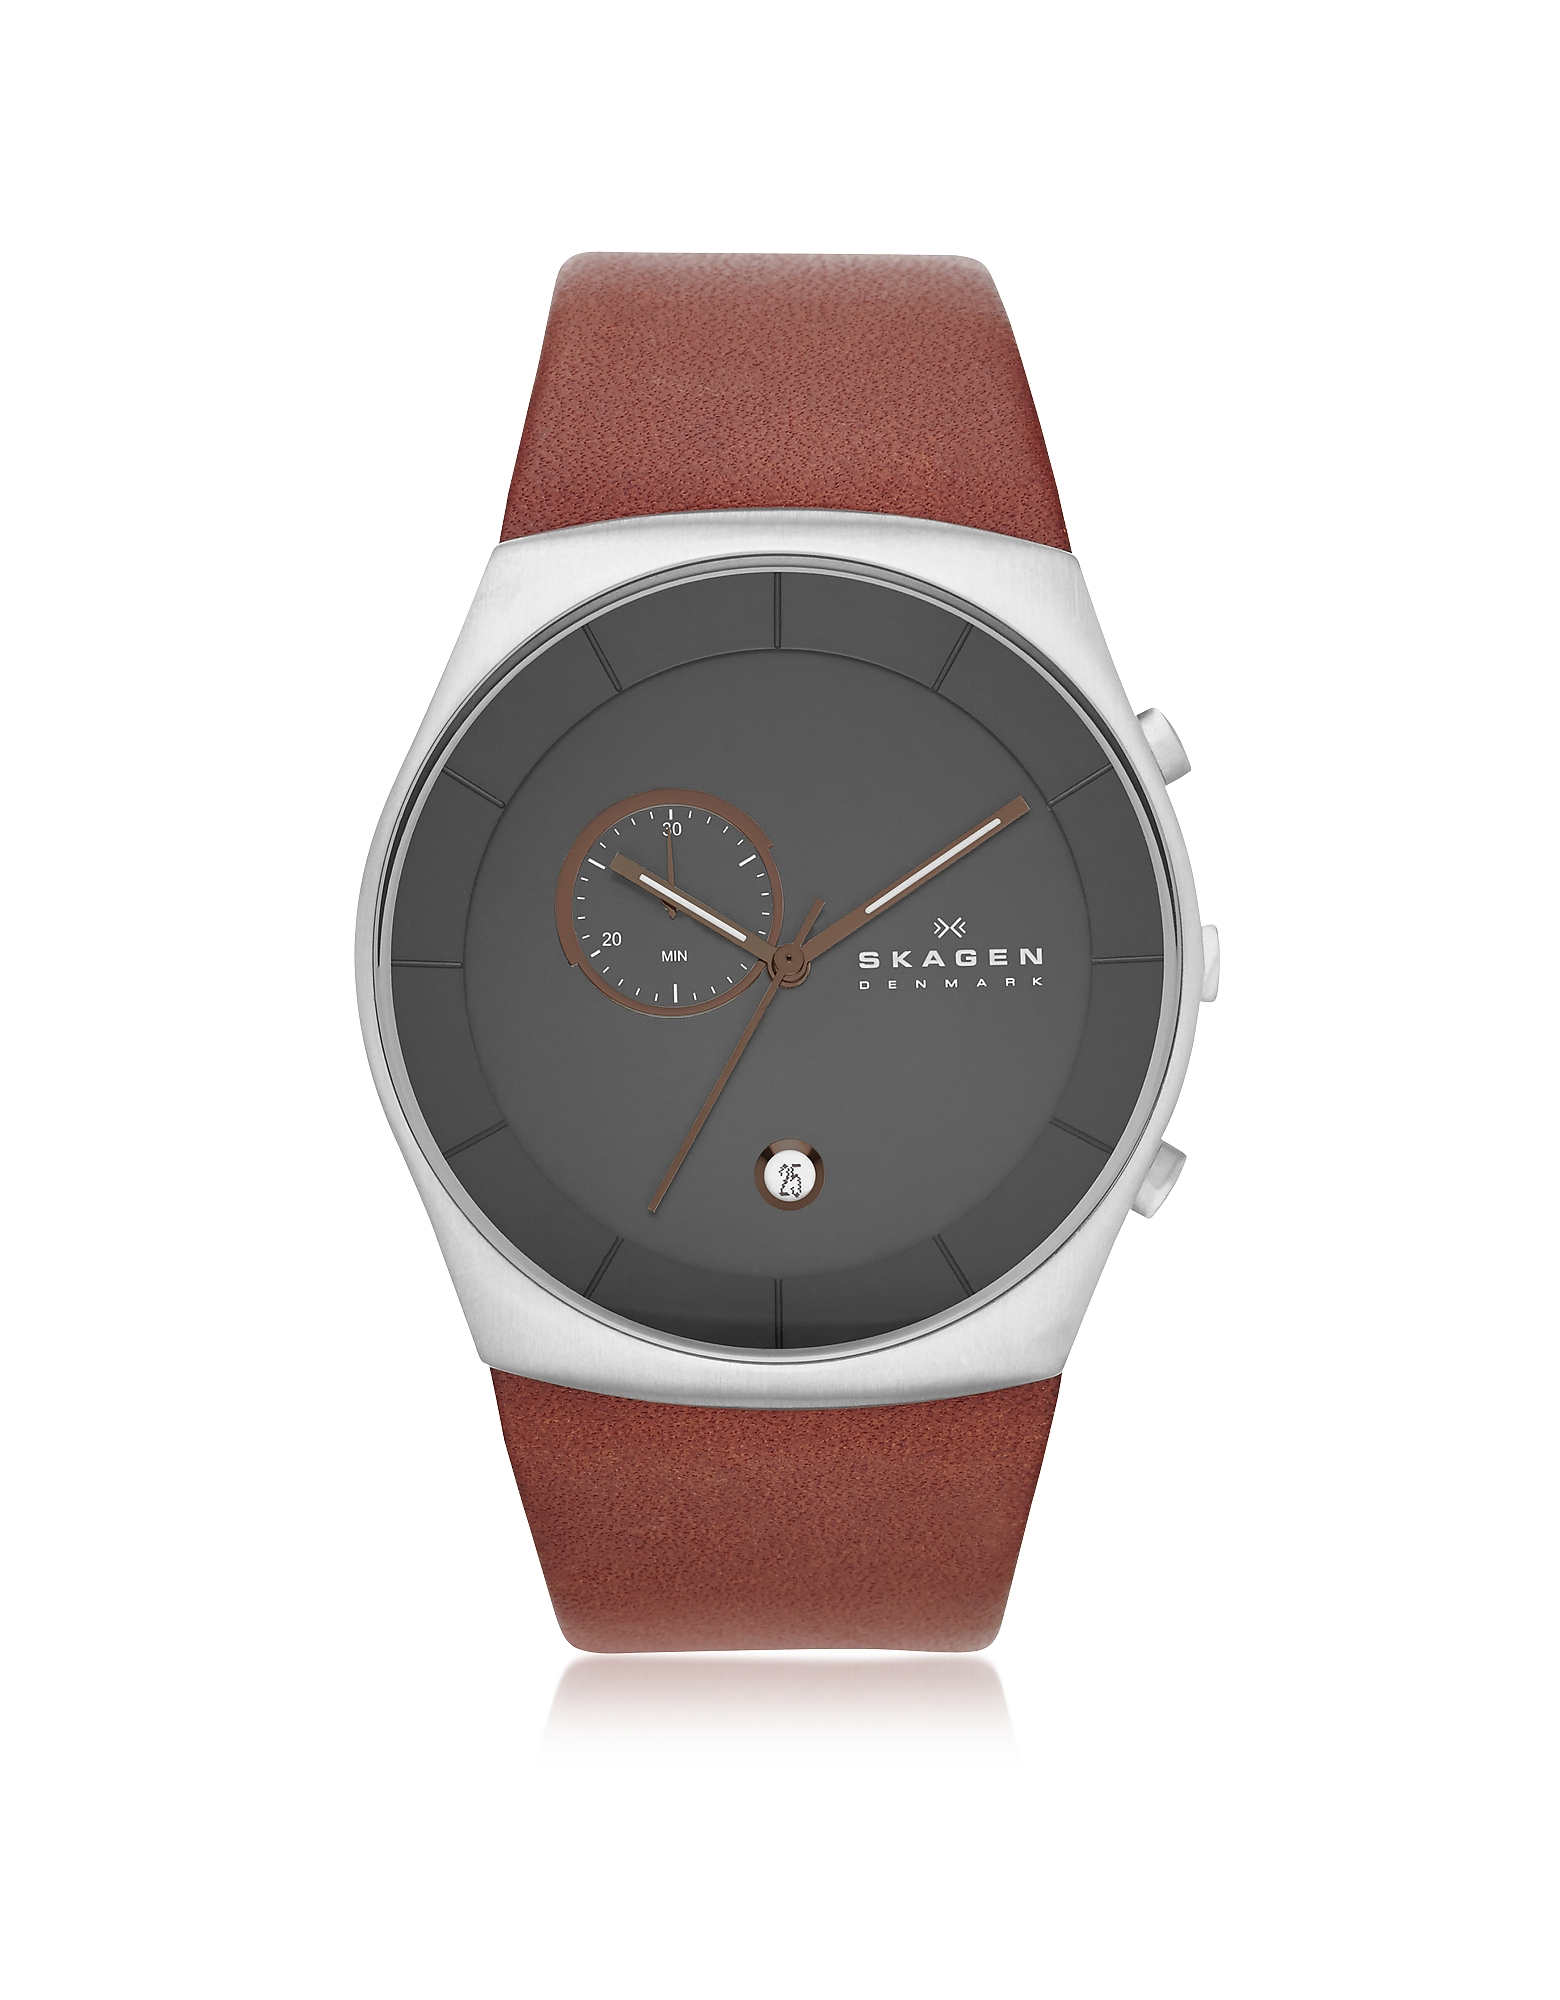 Image of Skagen Designer Men's Watches, Havene Chronograph Leather Men's Watch